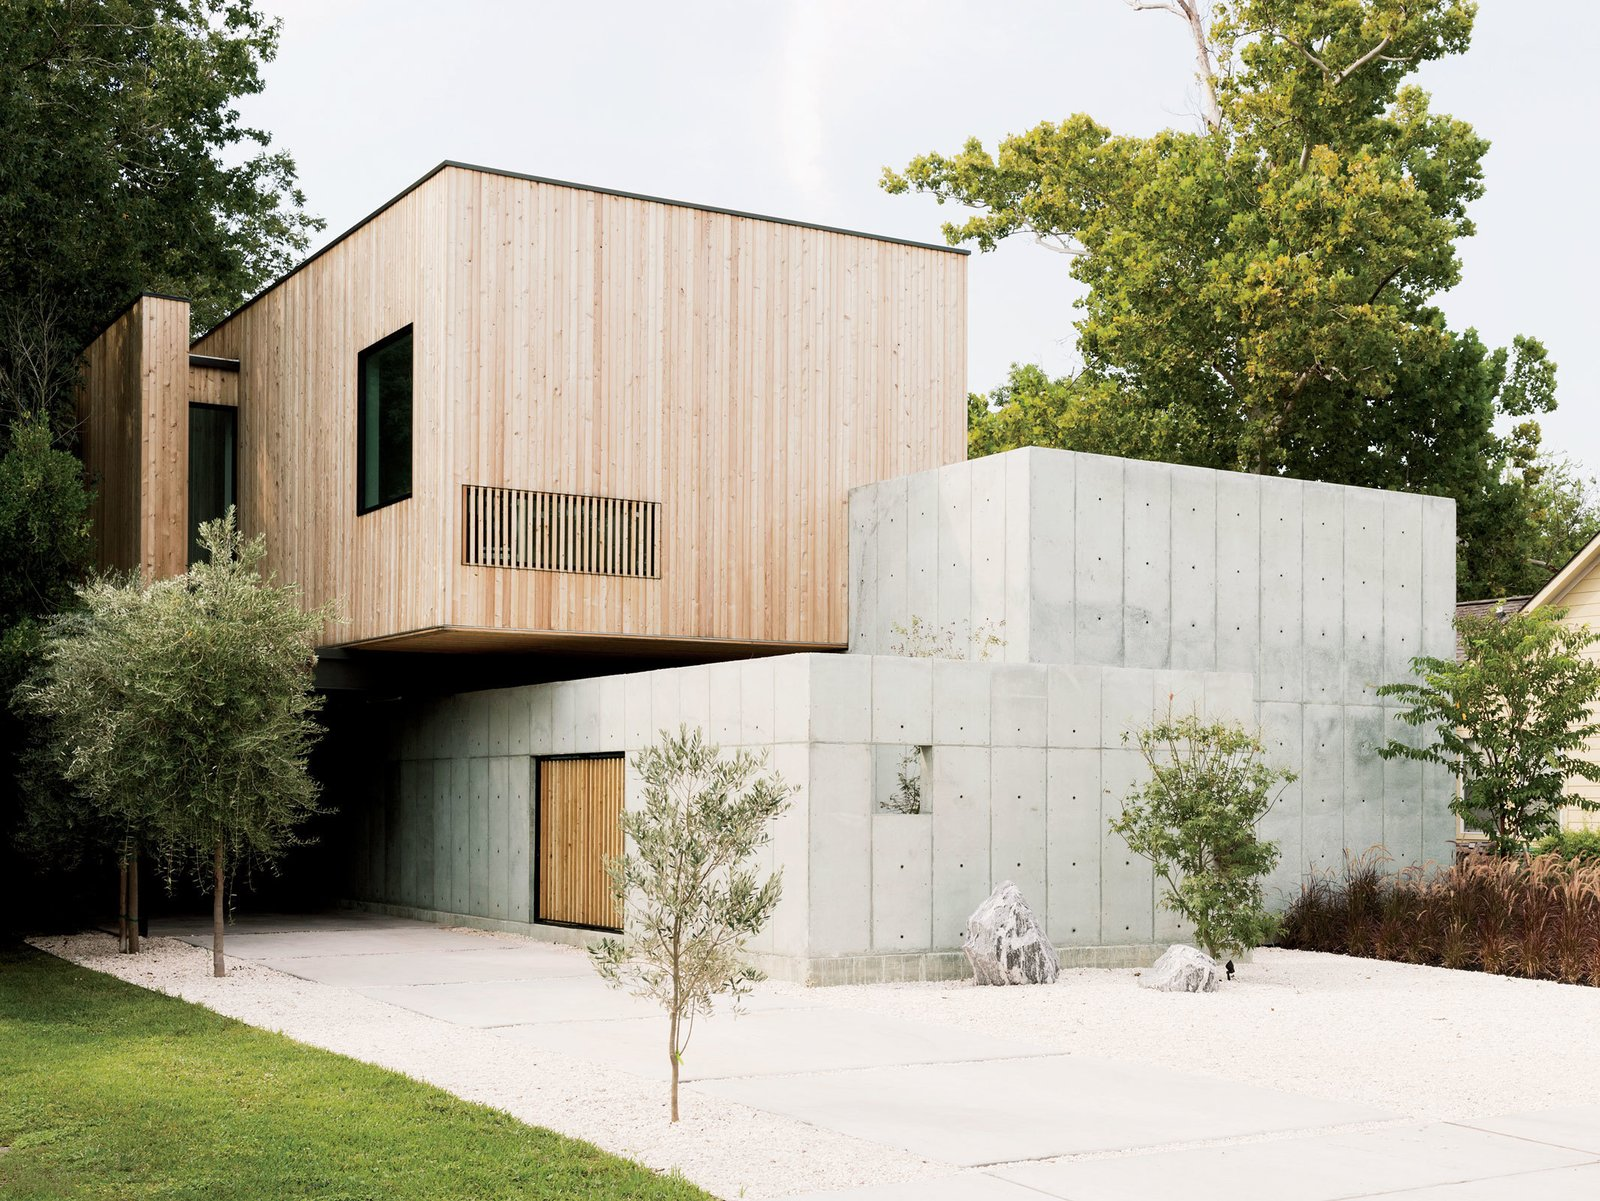 A Texas Couple Builds Their Cast-In-Place Concrete Dream Home - Dwell